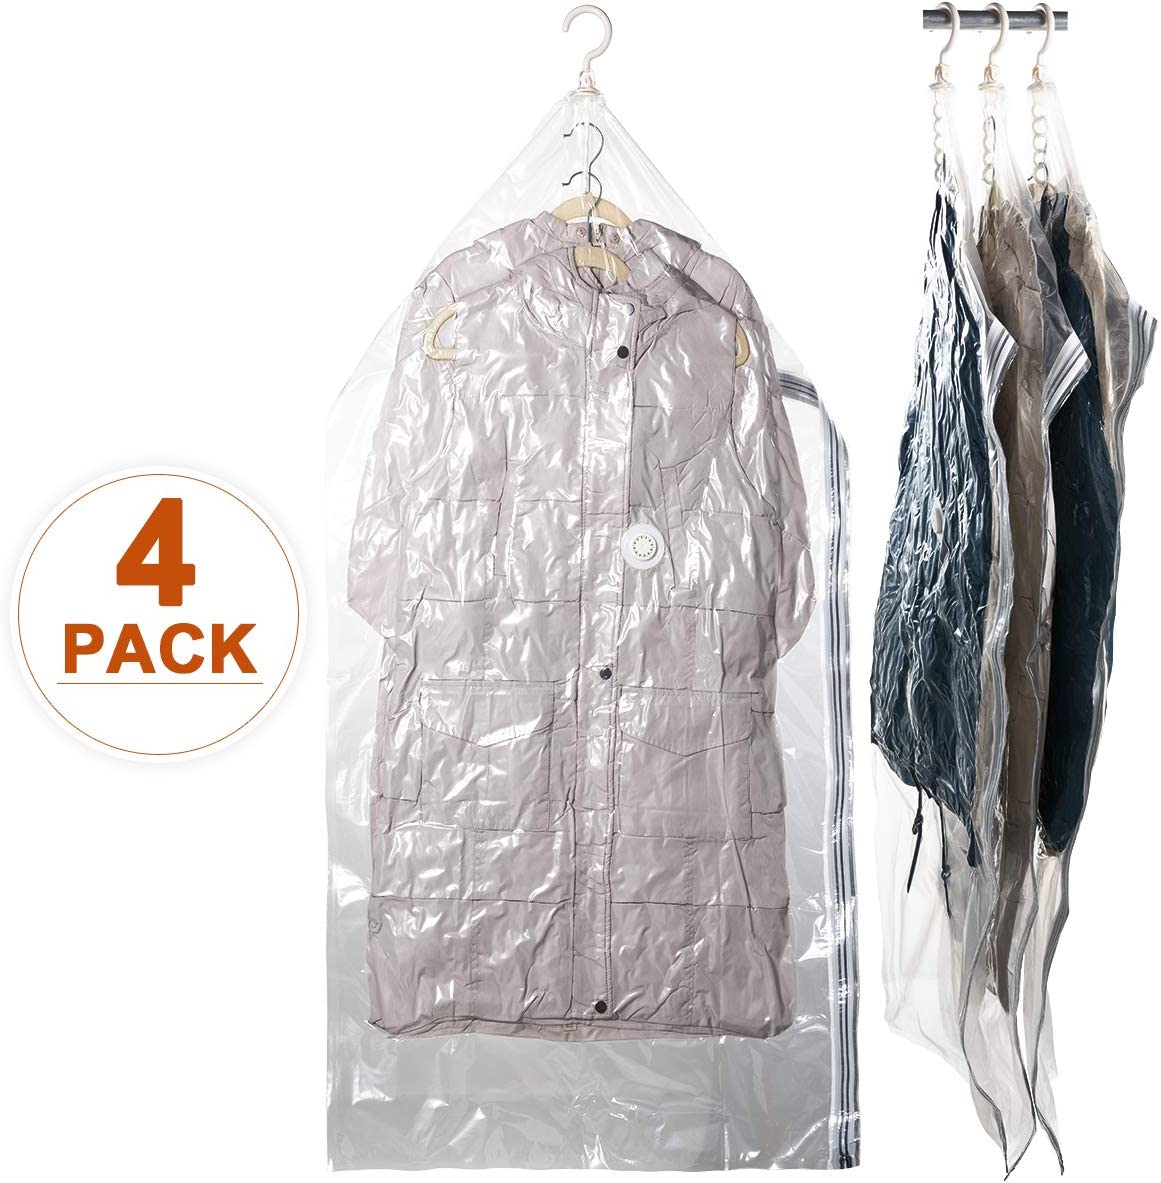 """CLEVHOM Hanging Space Bags Vacuum Storage Bags for Clothes, Dress, Set of 4 (Long 53""""x27.6"""") Large Reusable Garment Protector, Closet Organizer"""